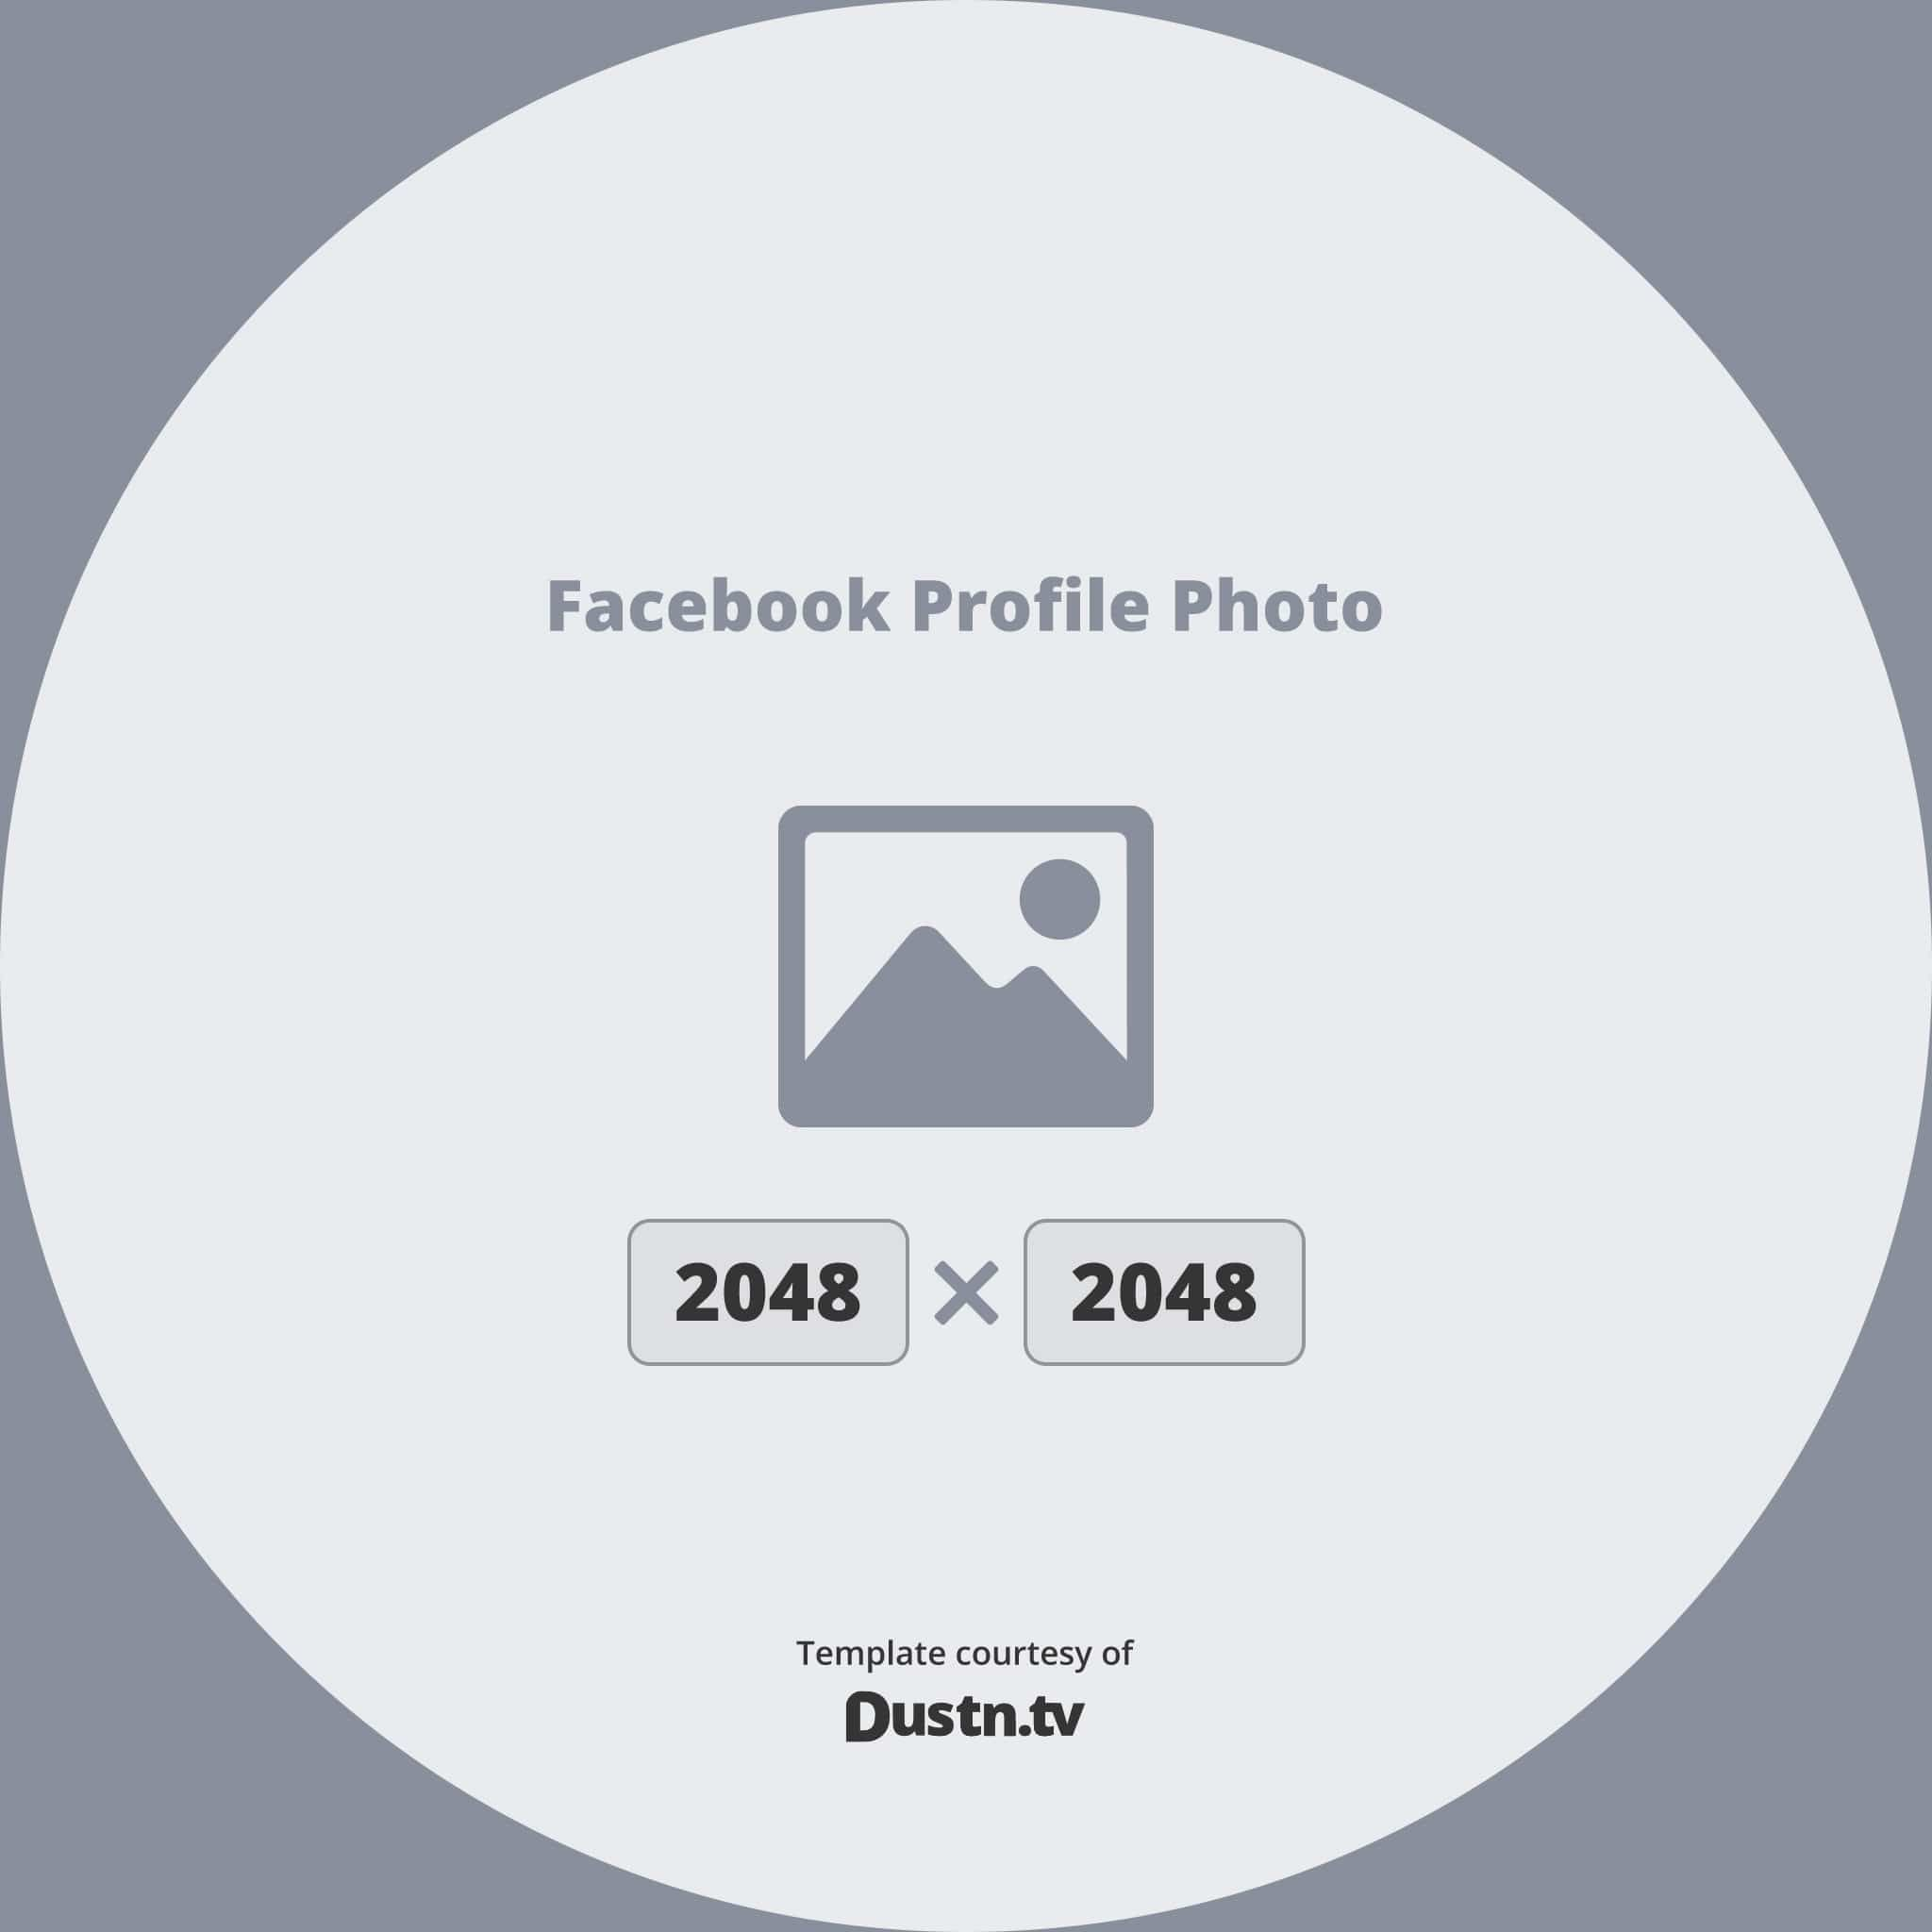 Facebook image sizes dimensions everything you need to